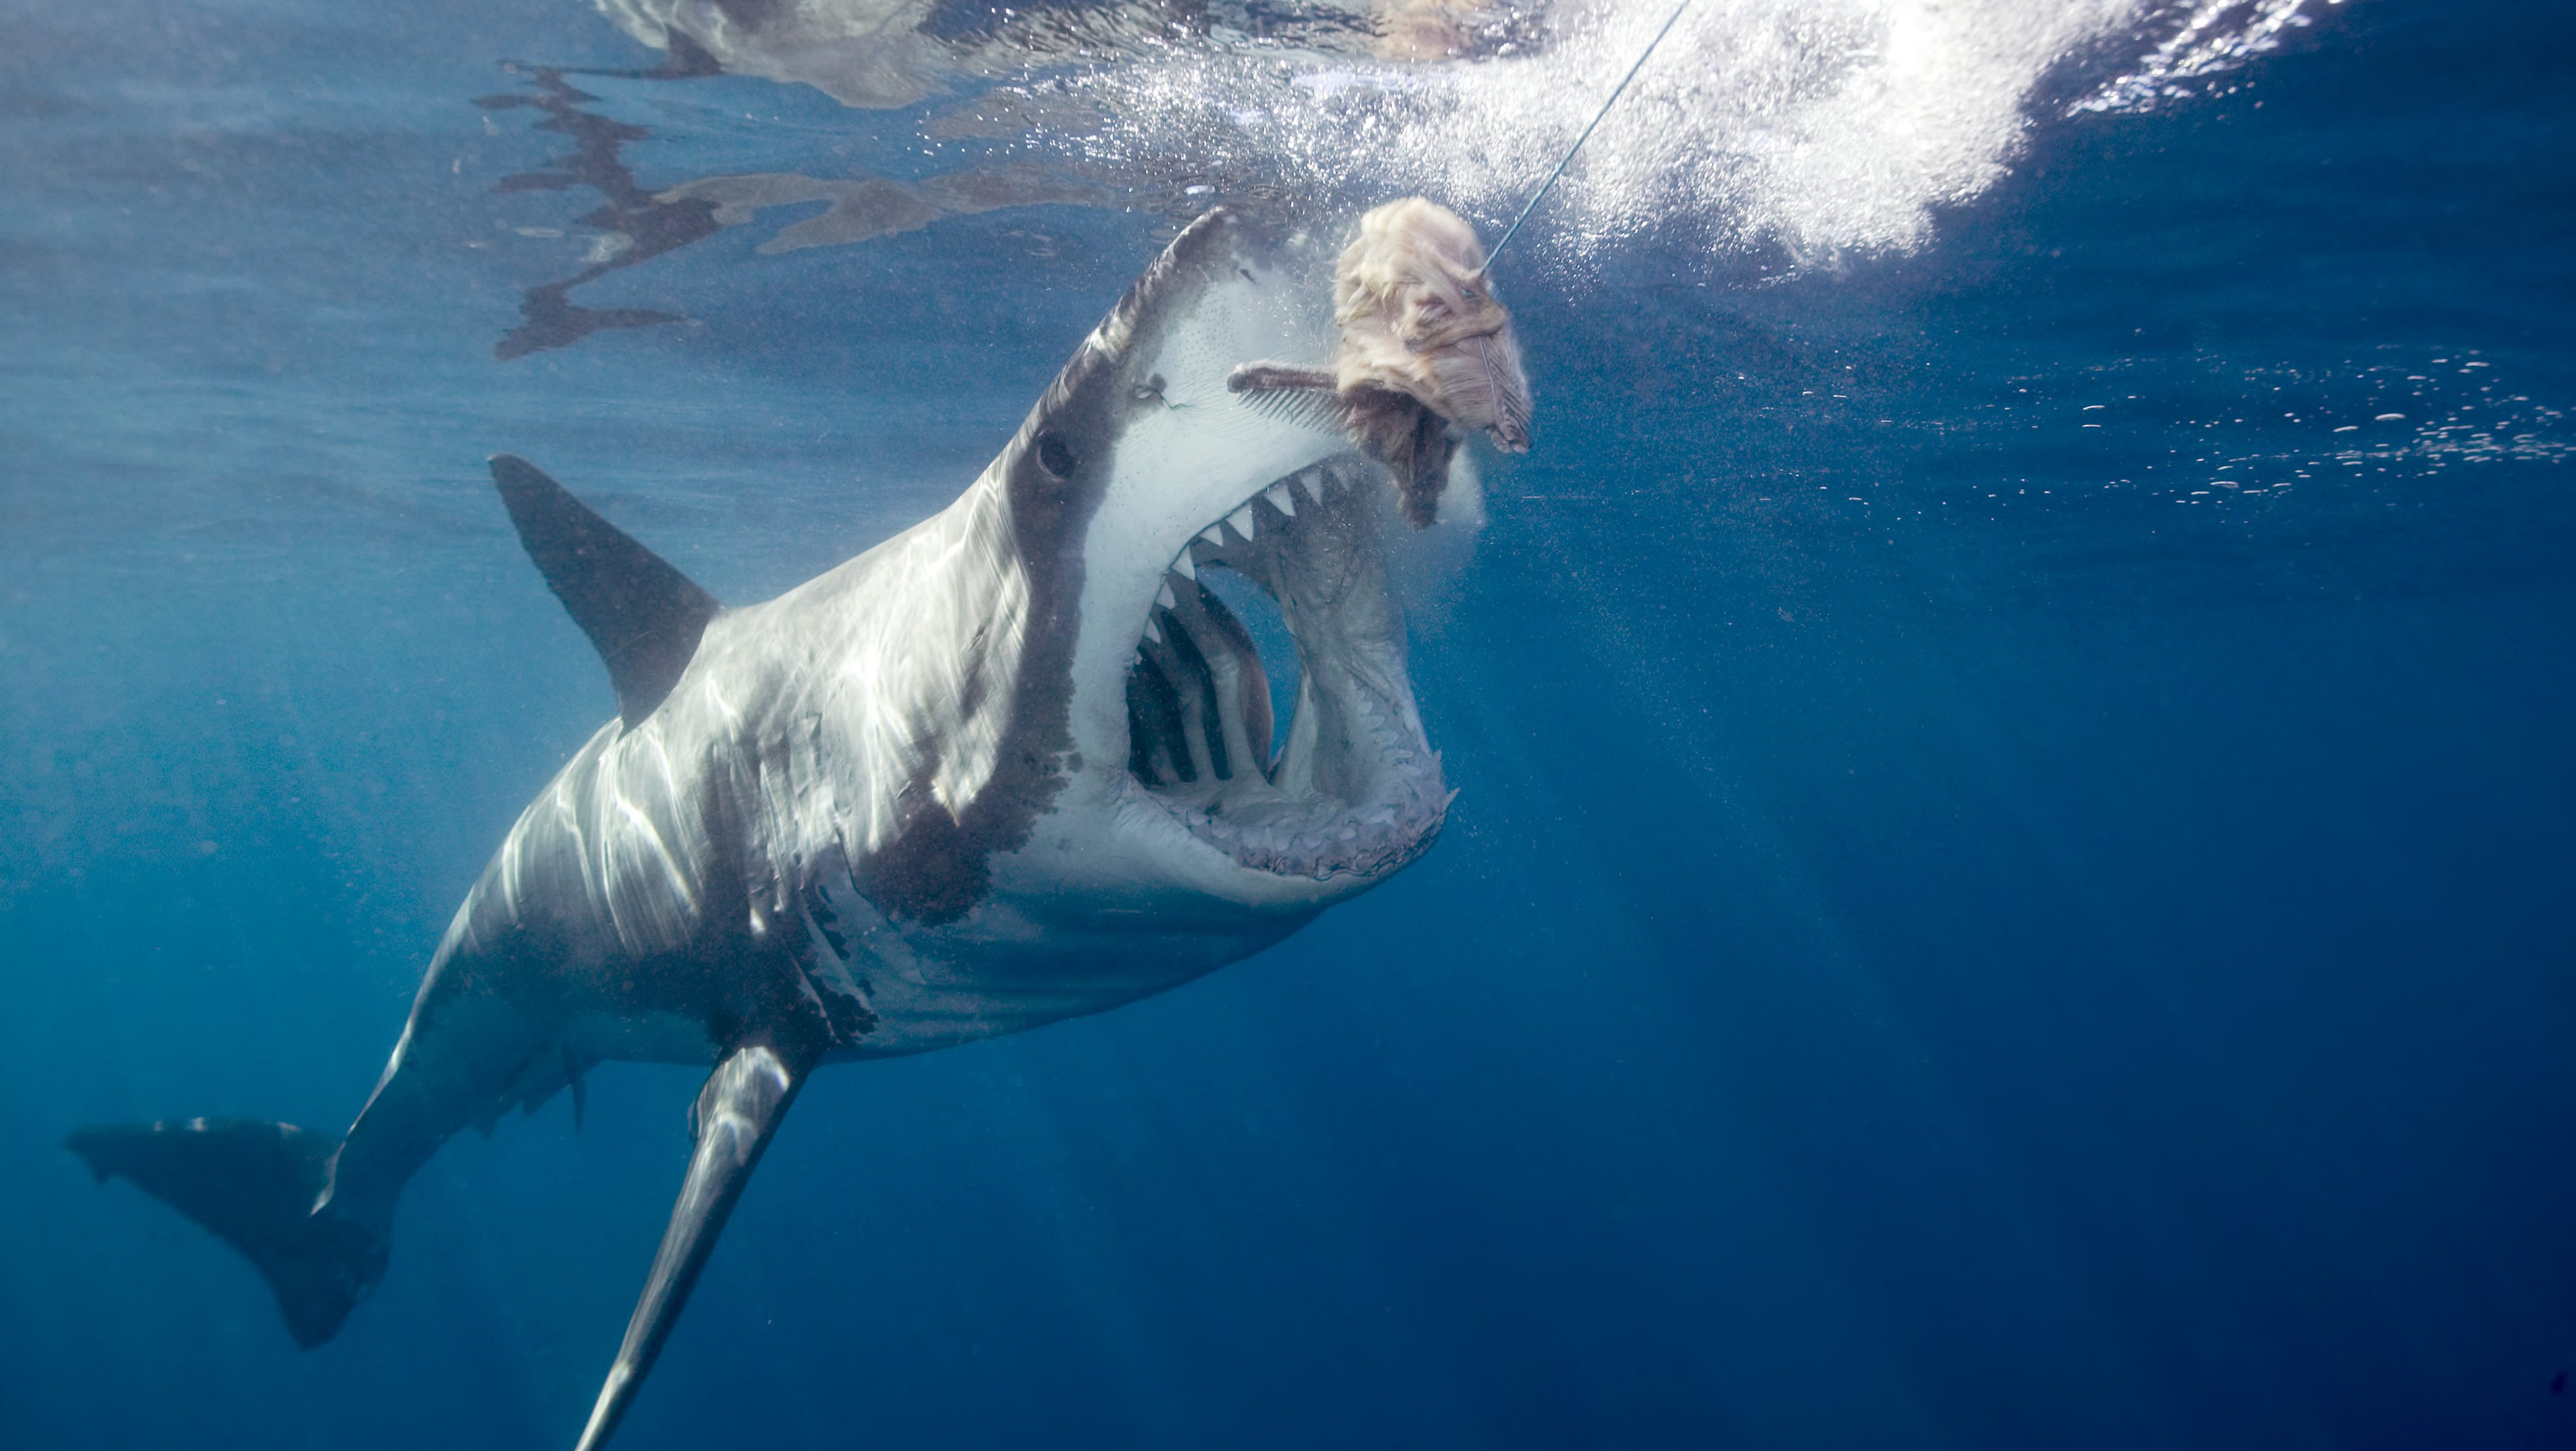 Great white shark arching body and opening mouth for bait (wide-angle)